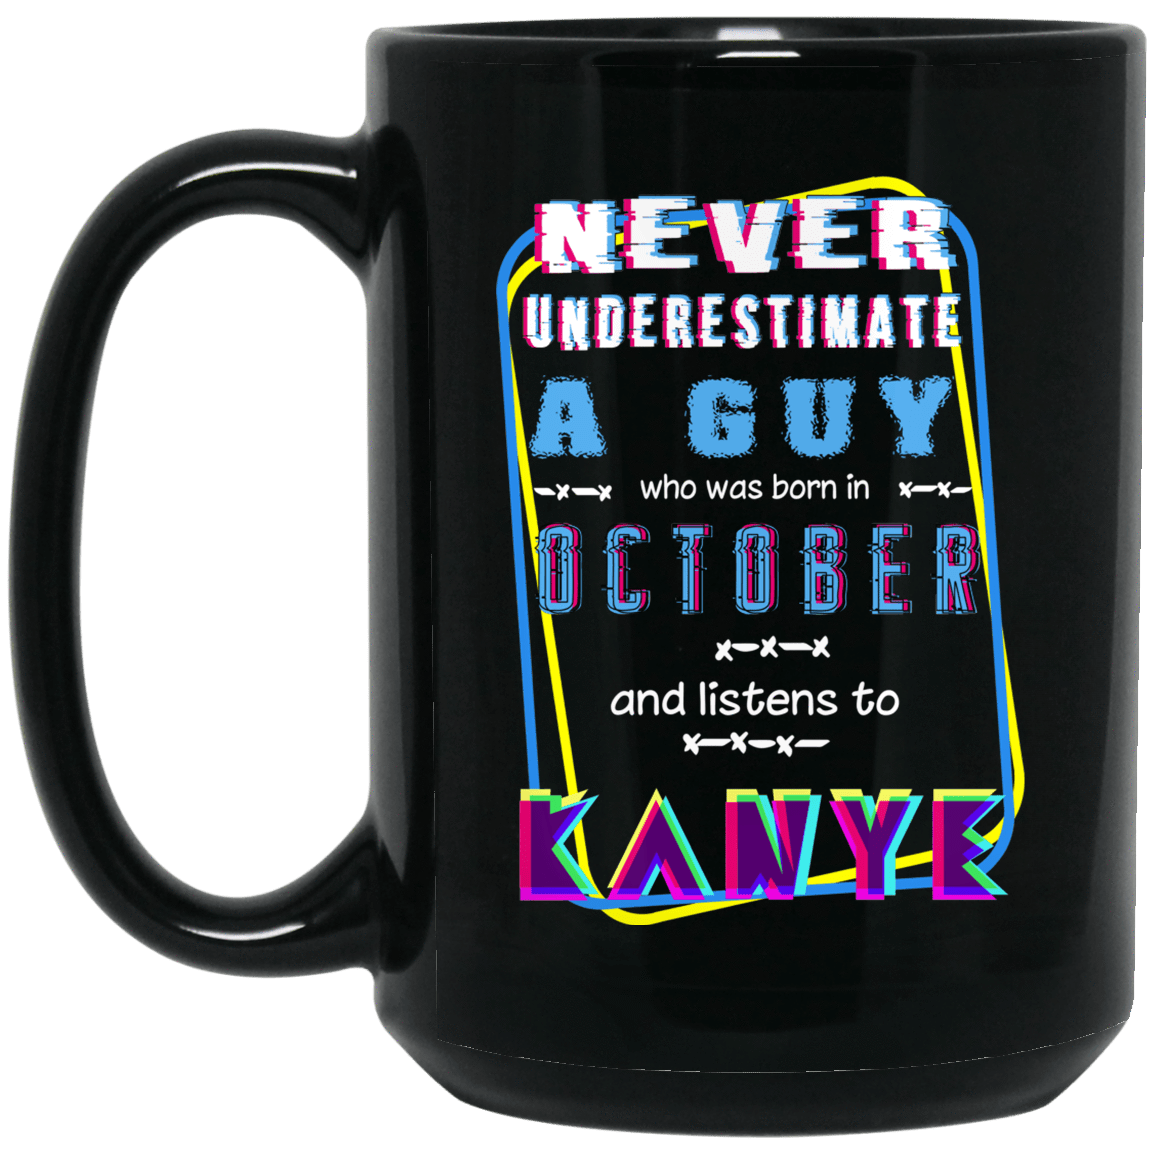 Never Underestimate A Guy Who Was Born In October And Listens To Kanye West Mug 1066-10182-76152196-49311 - Tee Ript